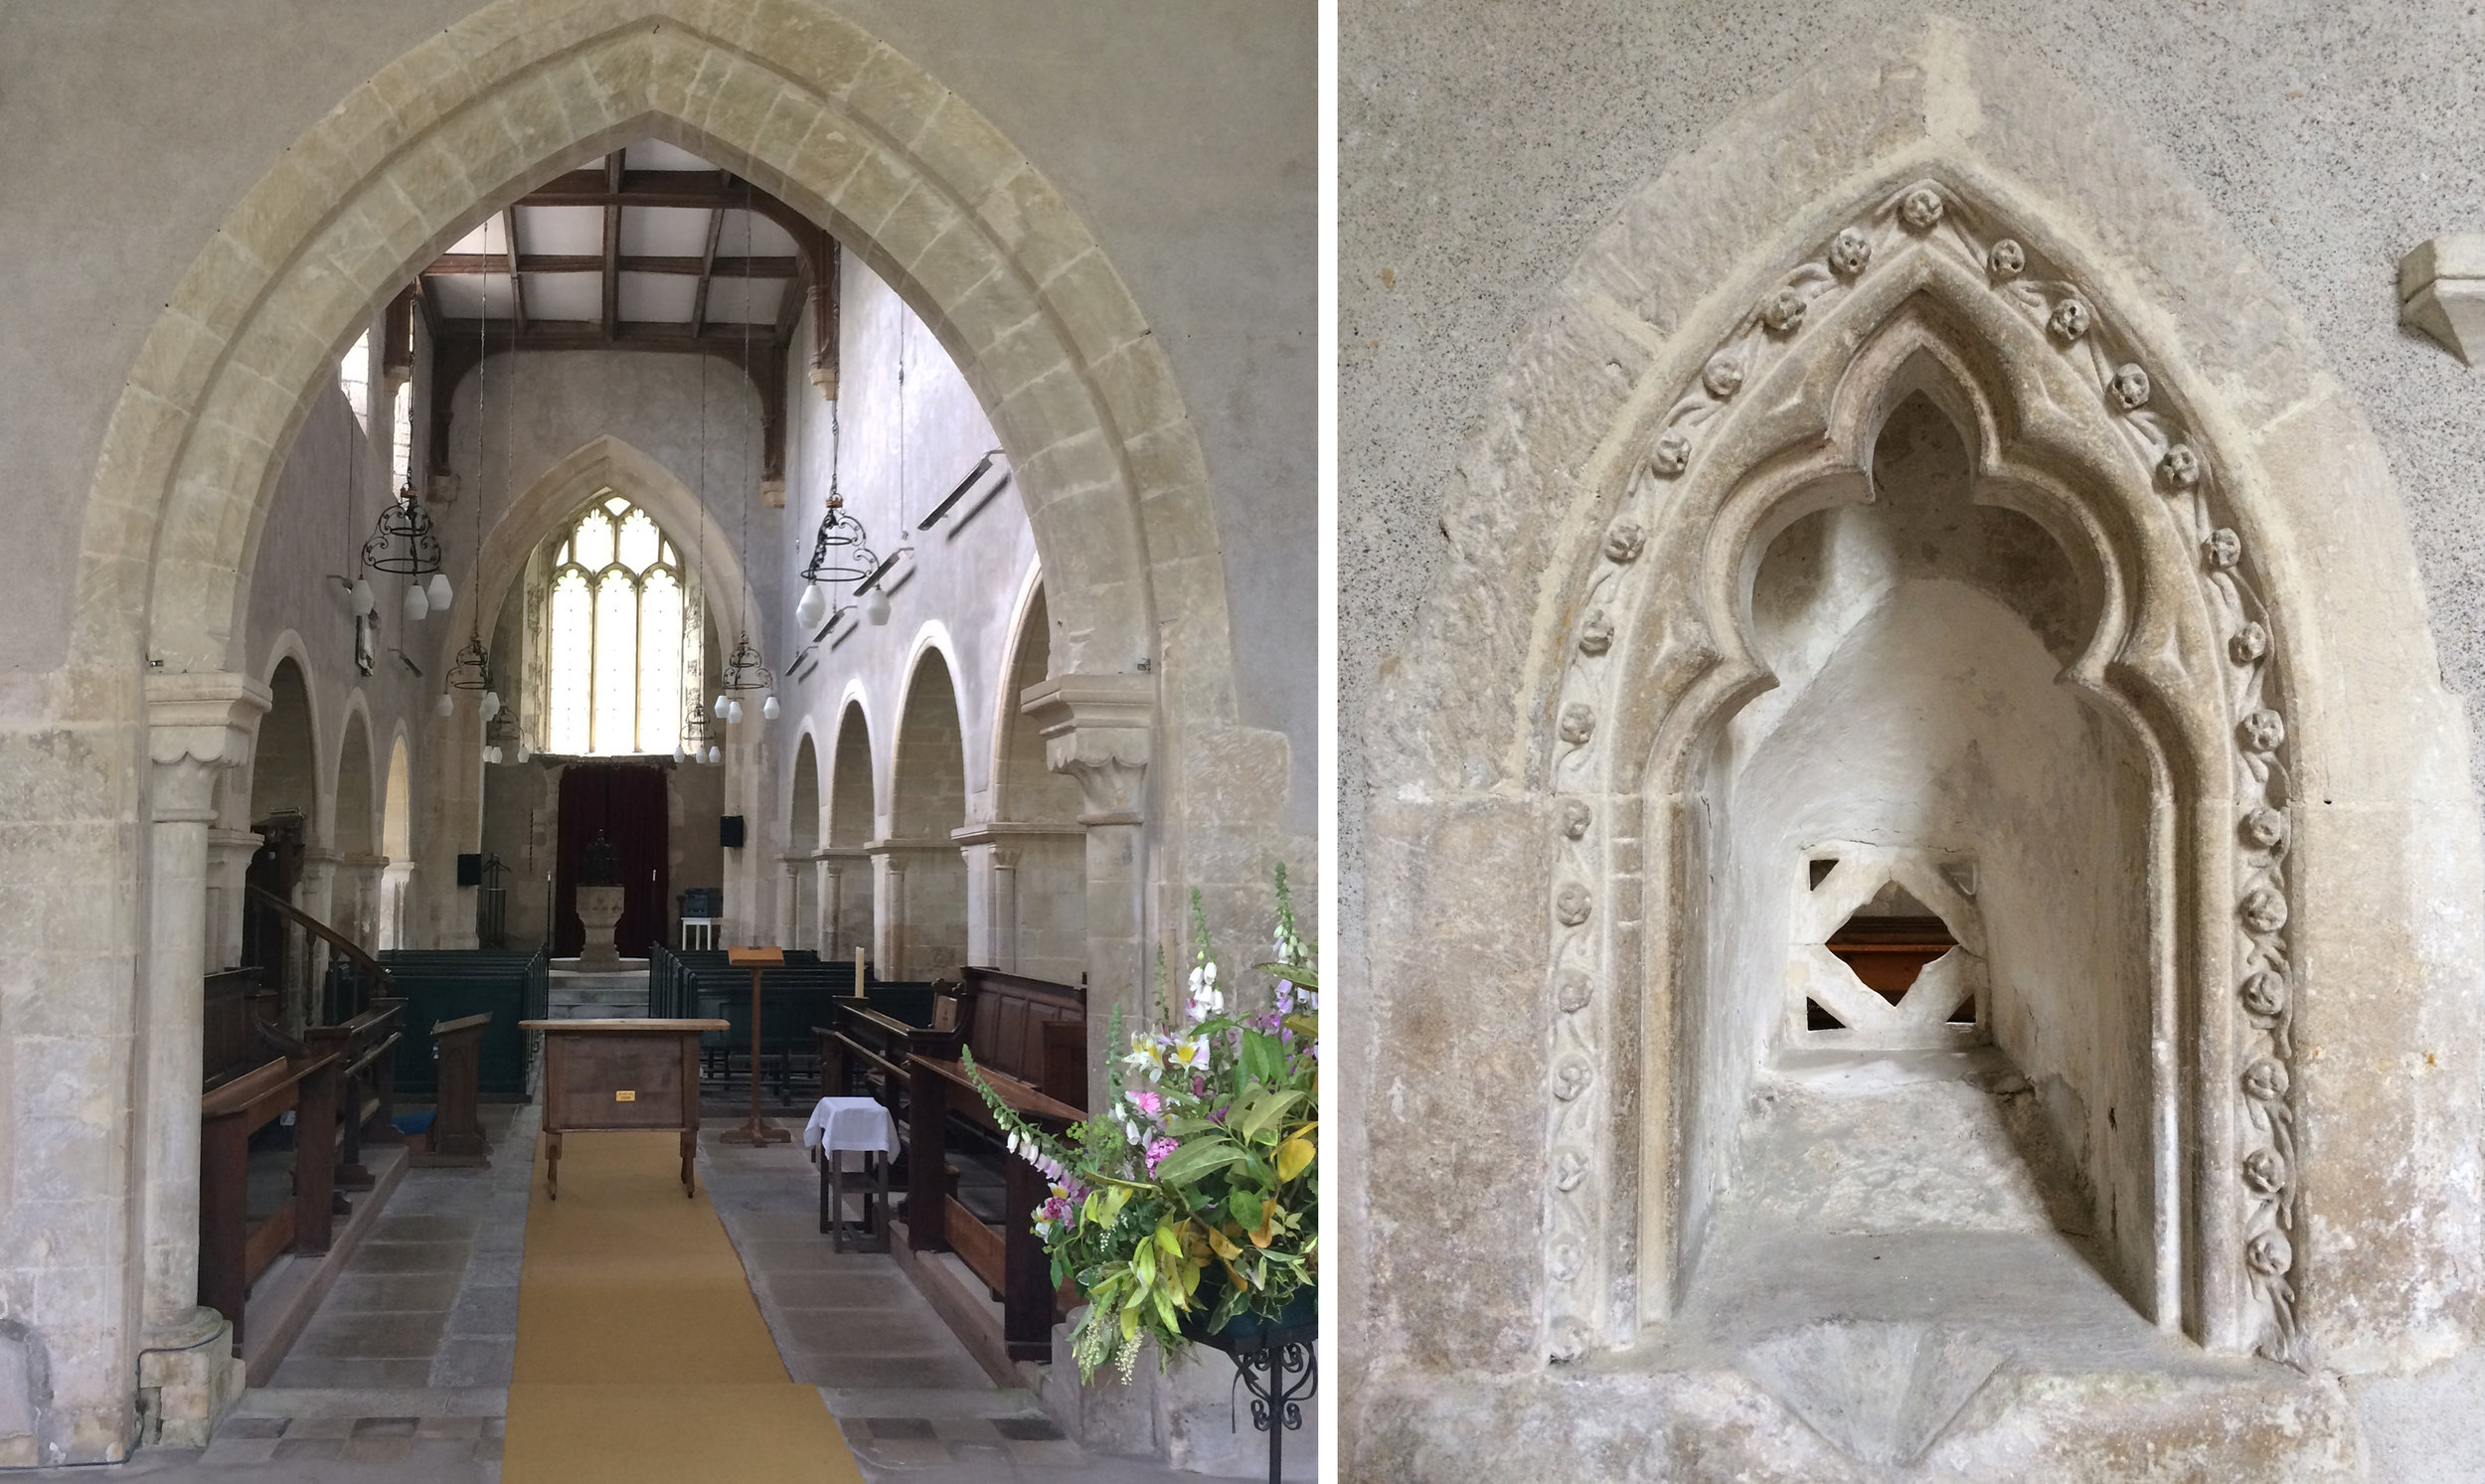 Inside All Saints, Enfold and a squint in the nave wall.